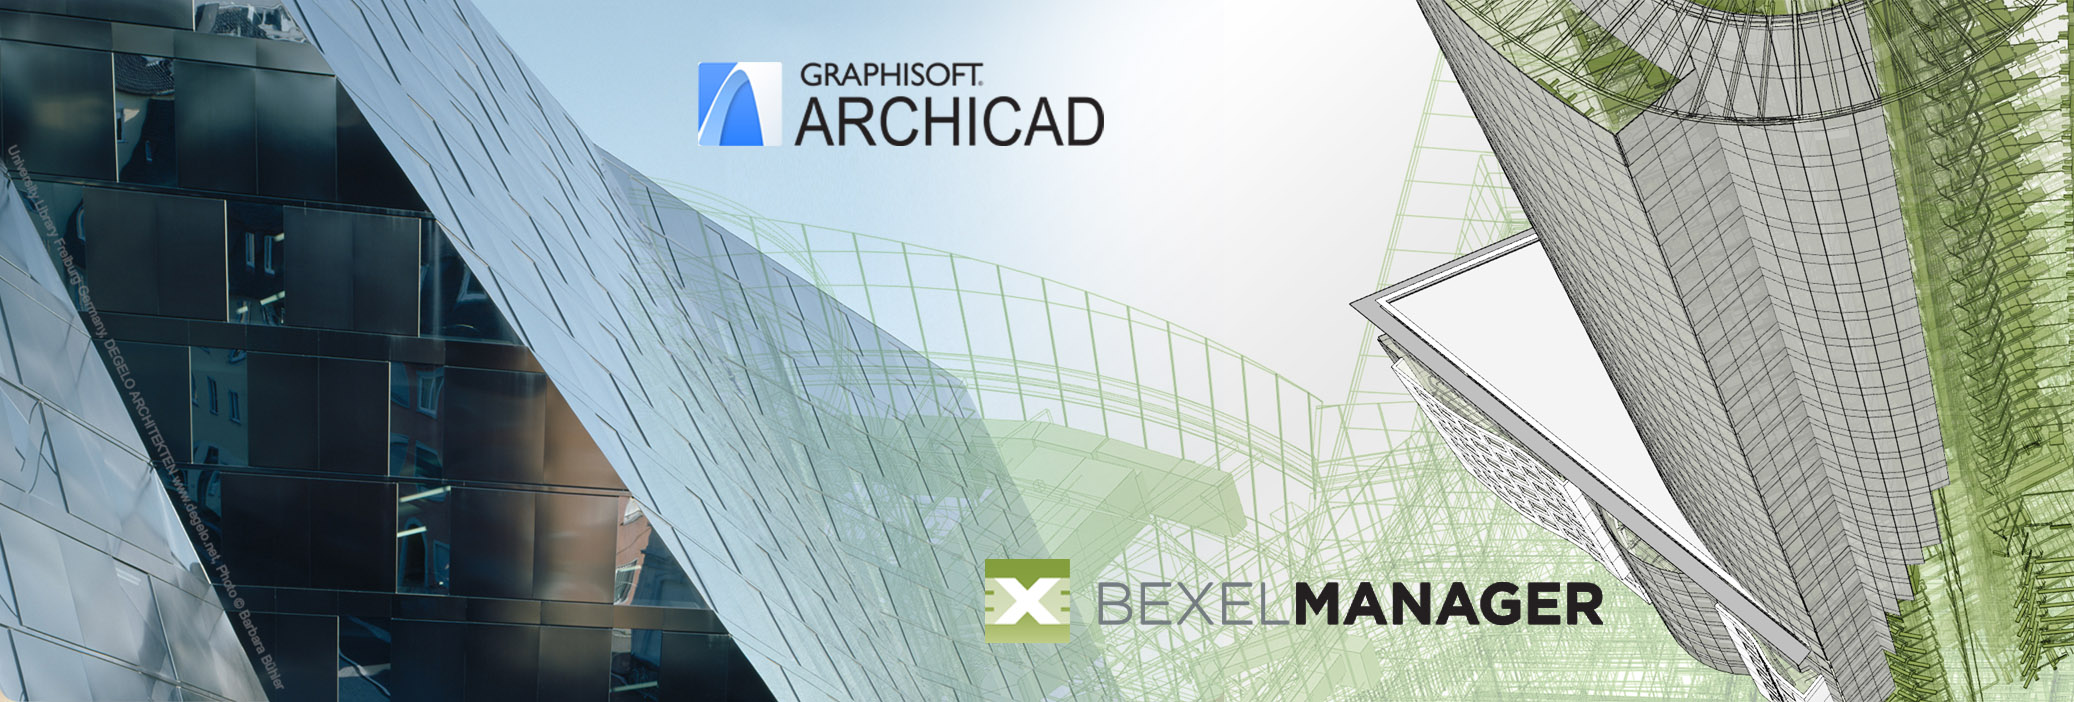 Graphisoft's ArchiCAD and BEXEL Manager collaboration | BIMCommunity